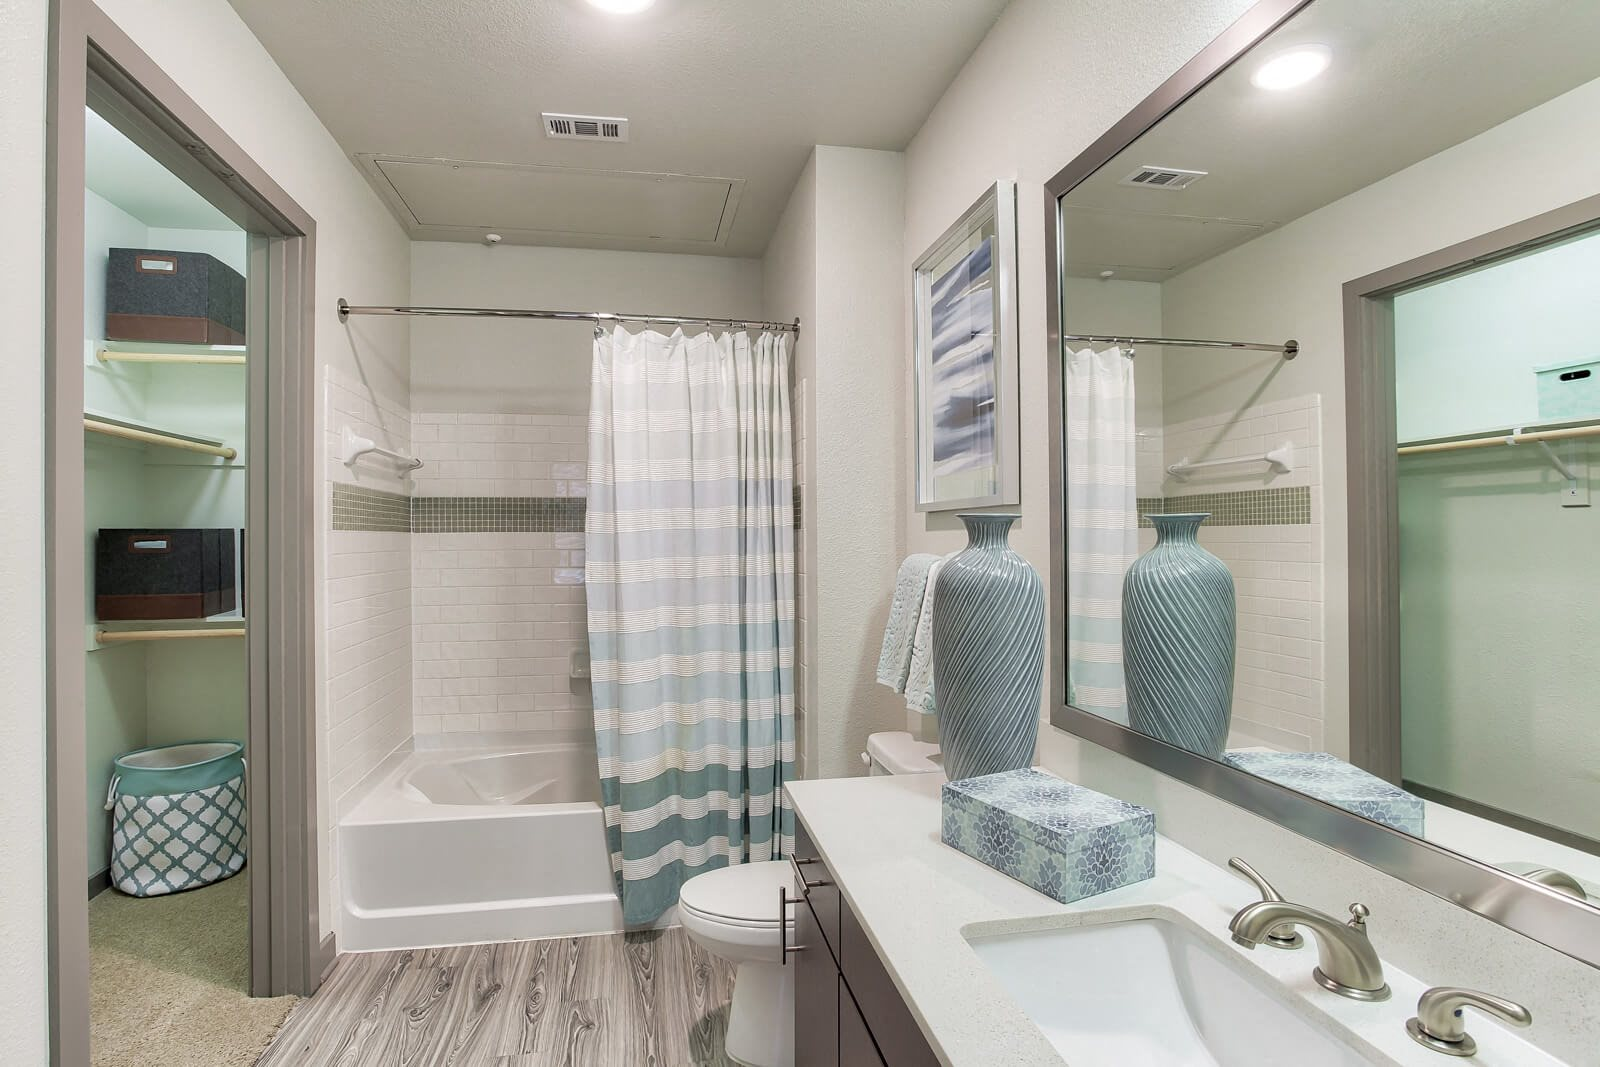 Upscale Bathrooms with Modern Finishes at Windsor West Lemmon, Dallas, 75209